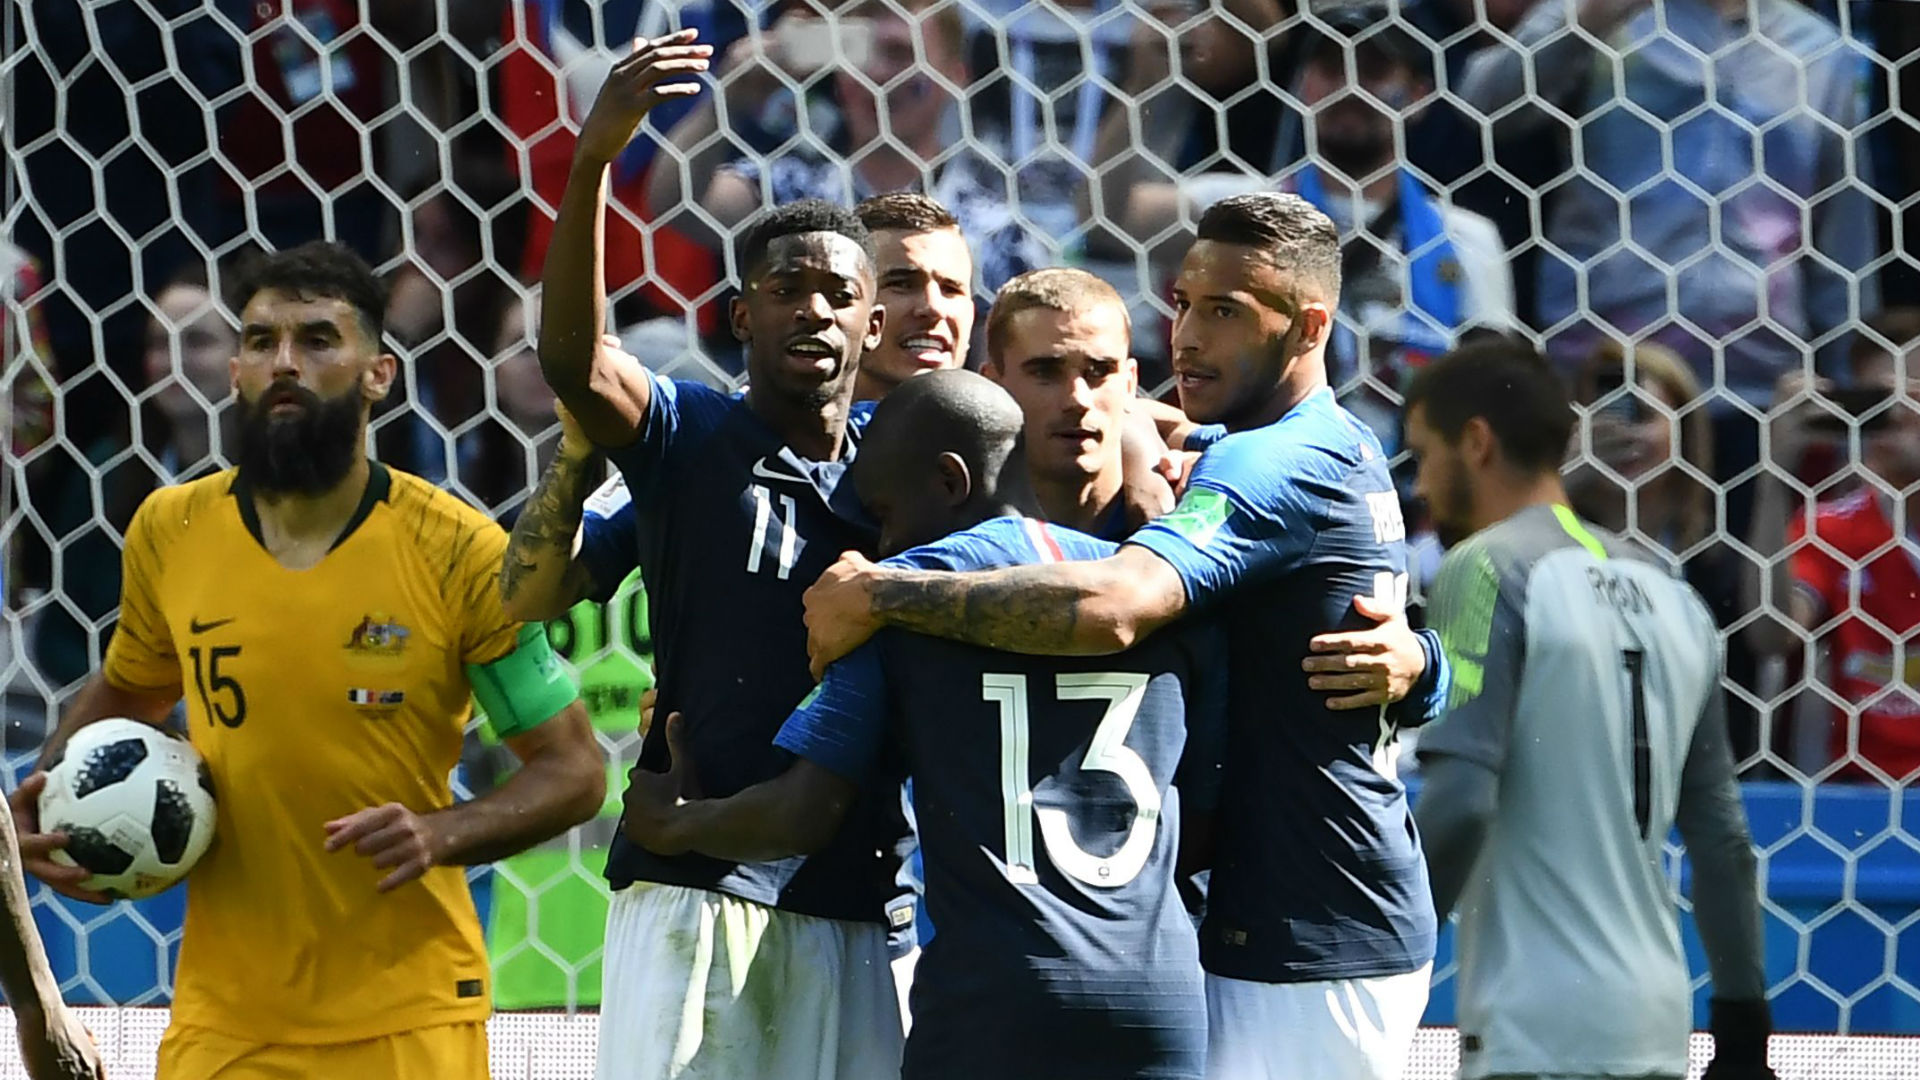 France celebratin Paul Pogba goal France Australia World Cup 2018 16062018.jpg